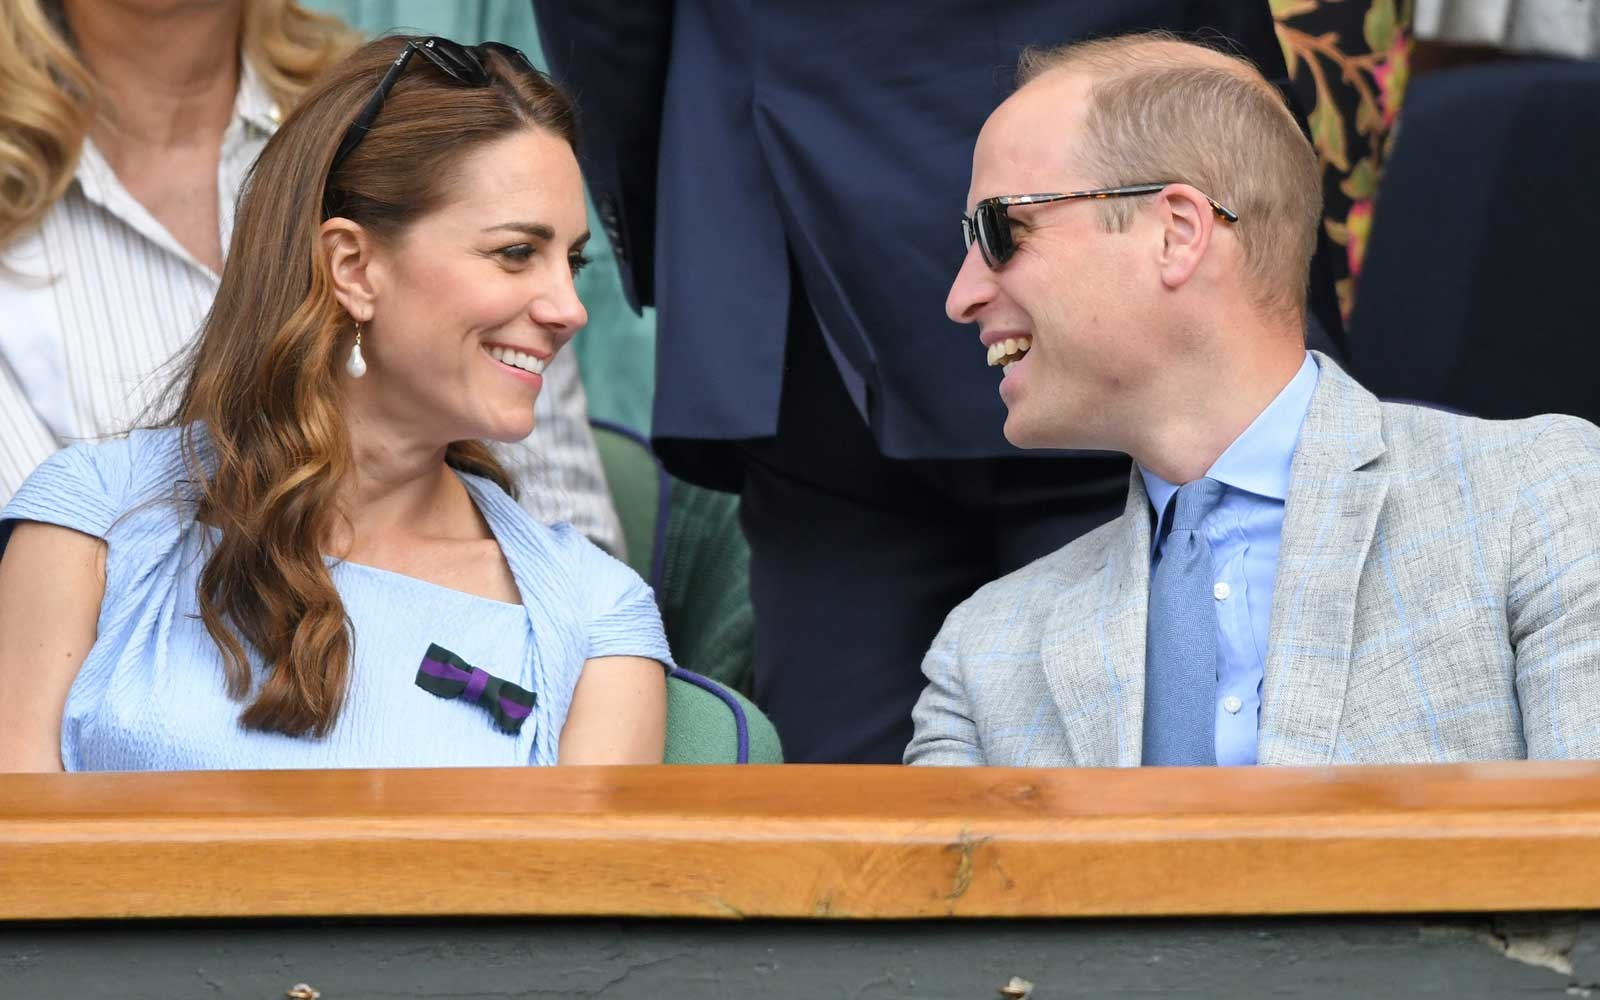 You can rent the house across the street from William and Kate for $850 a month